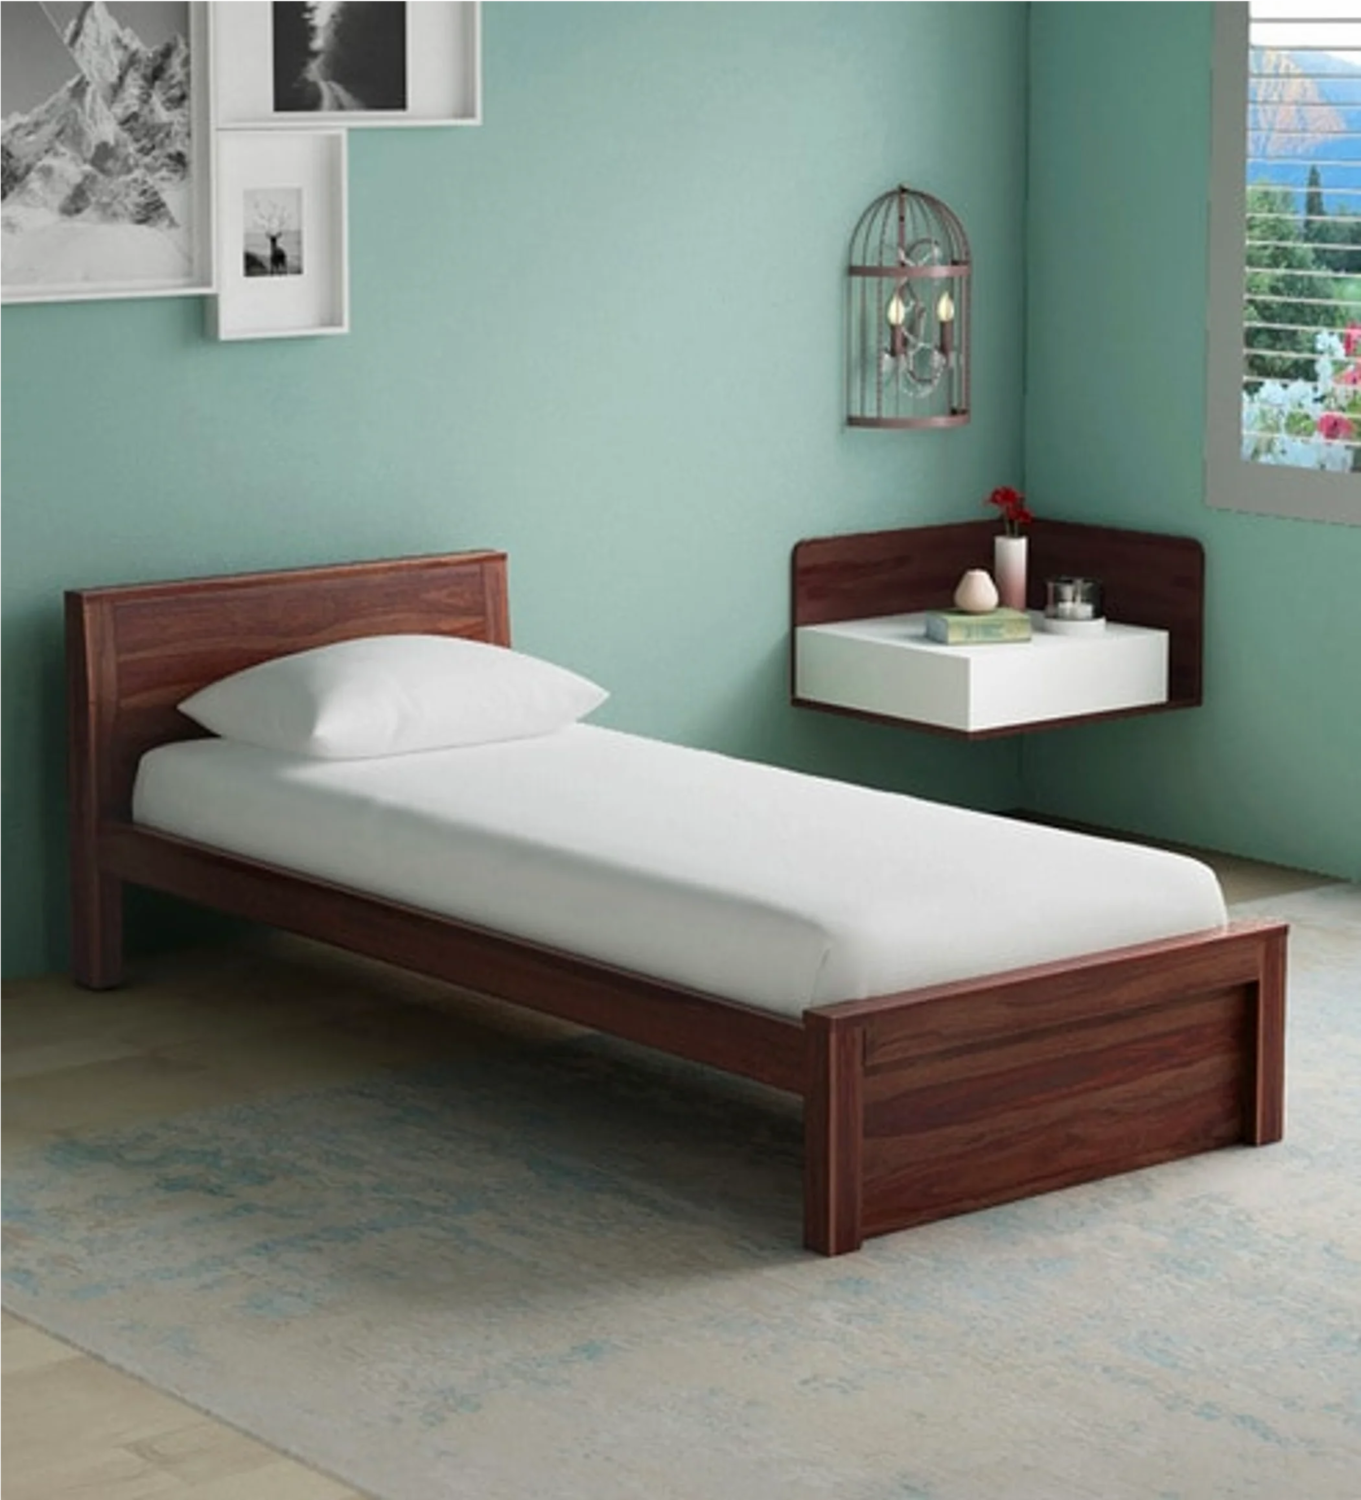 Nivo Bed in Brown Color